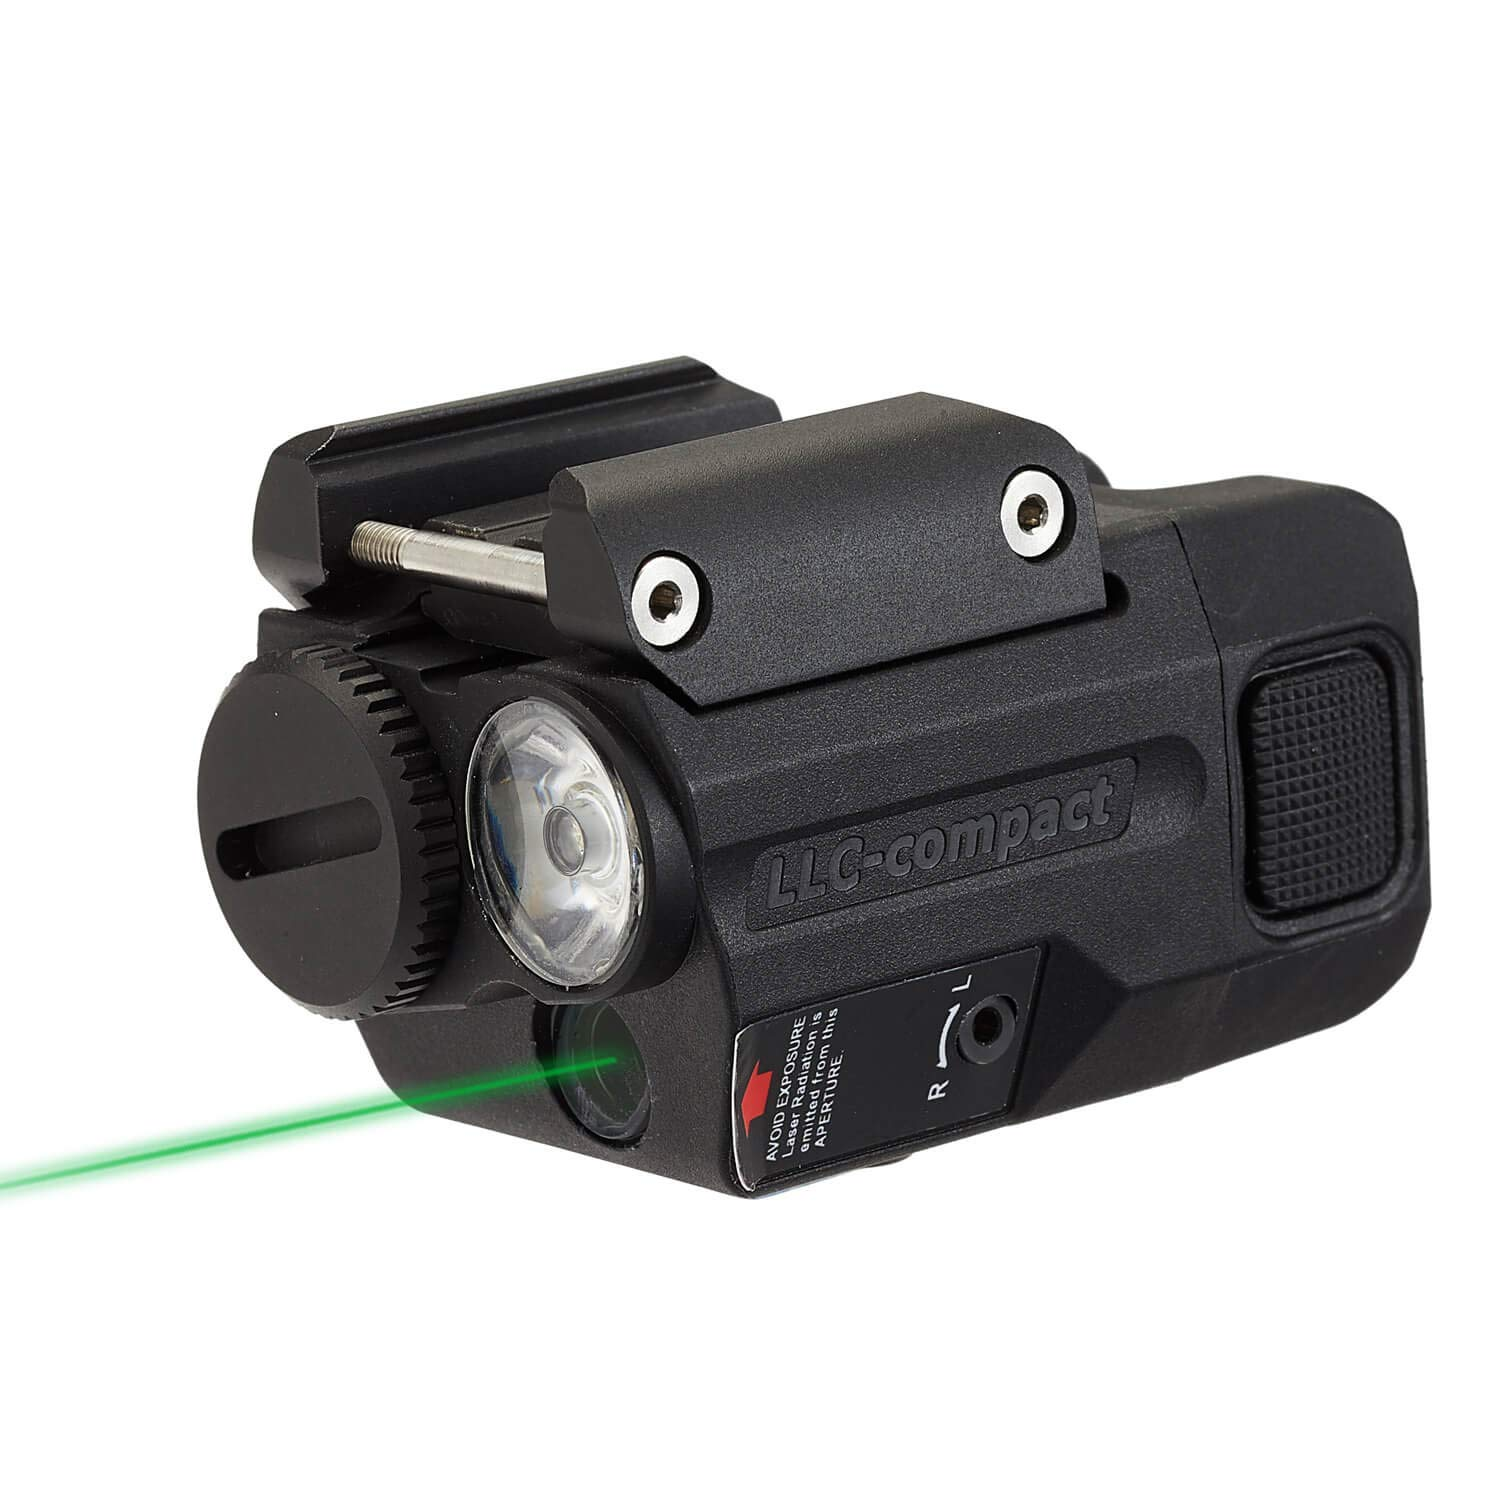 Beamshot LLC-Compact LED & Green Laser Sight Combo, for Concealed Carry (2019 ver.) by Beamshot